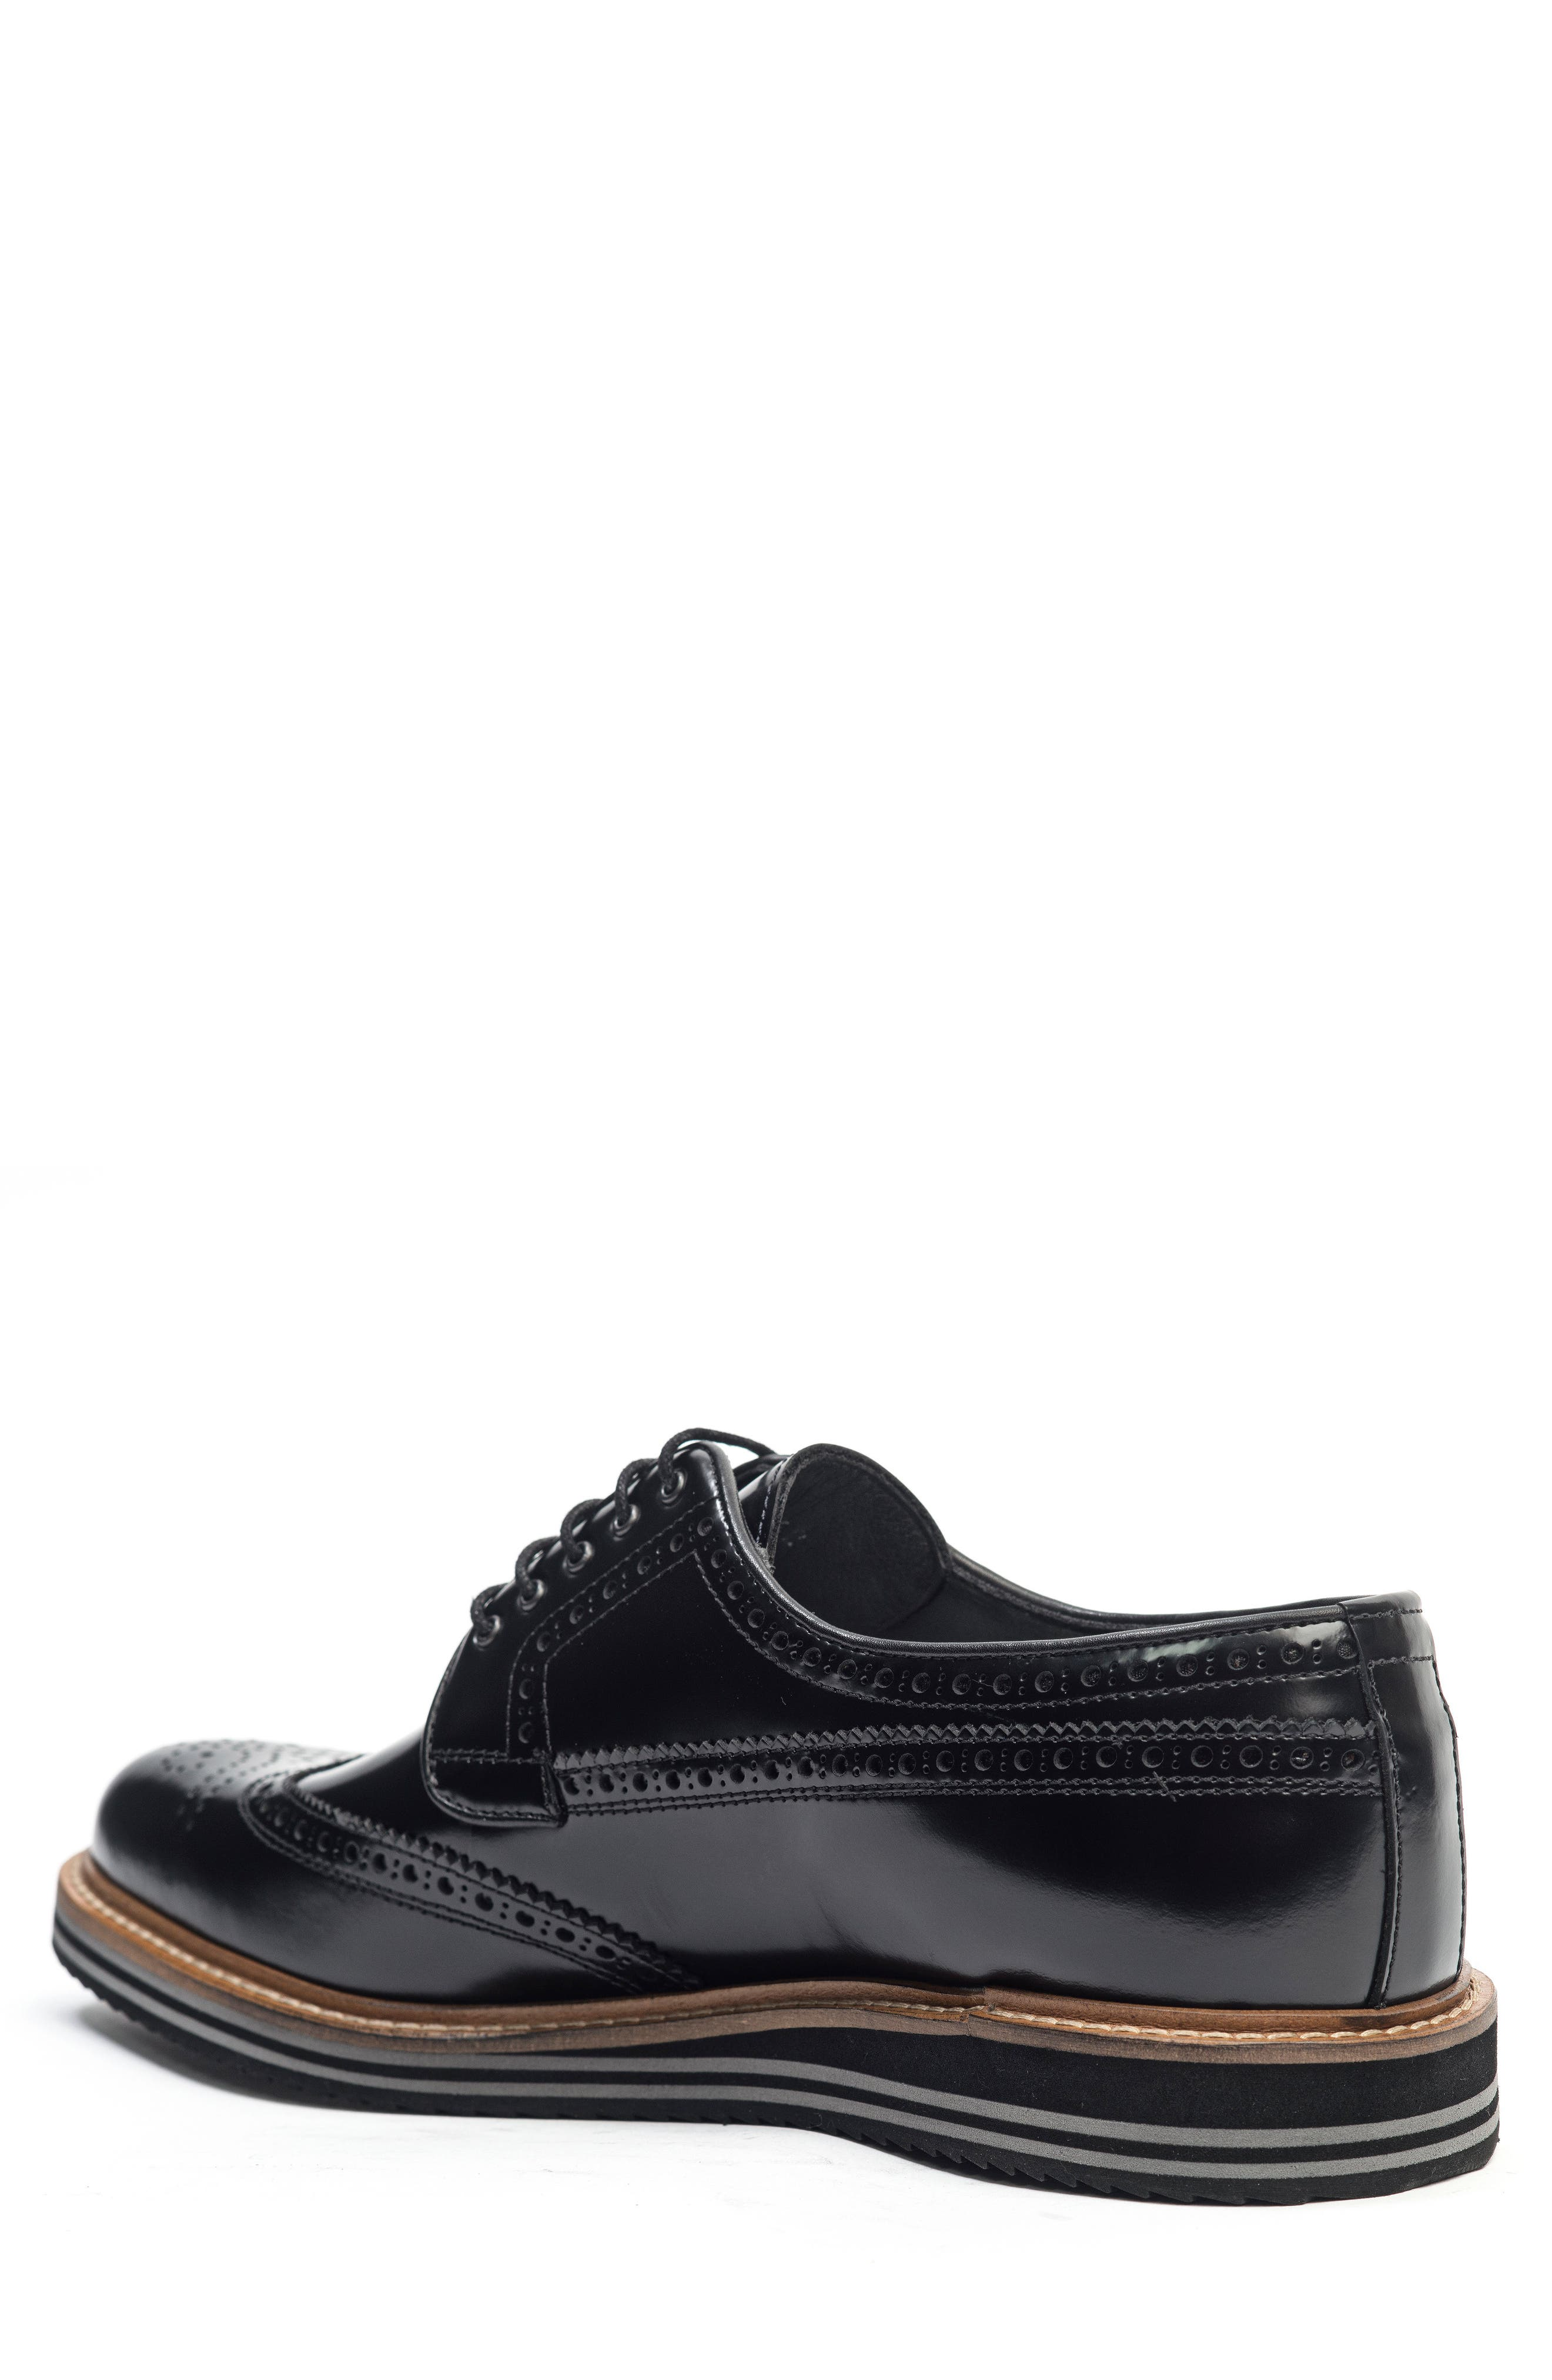 Doc Sandwich Sole Wingtip Oxford,                             Alternate thumbnail 2, color,                             001